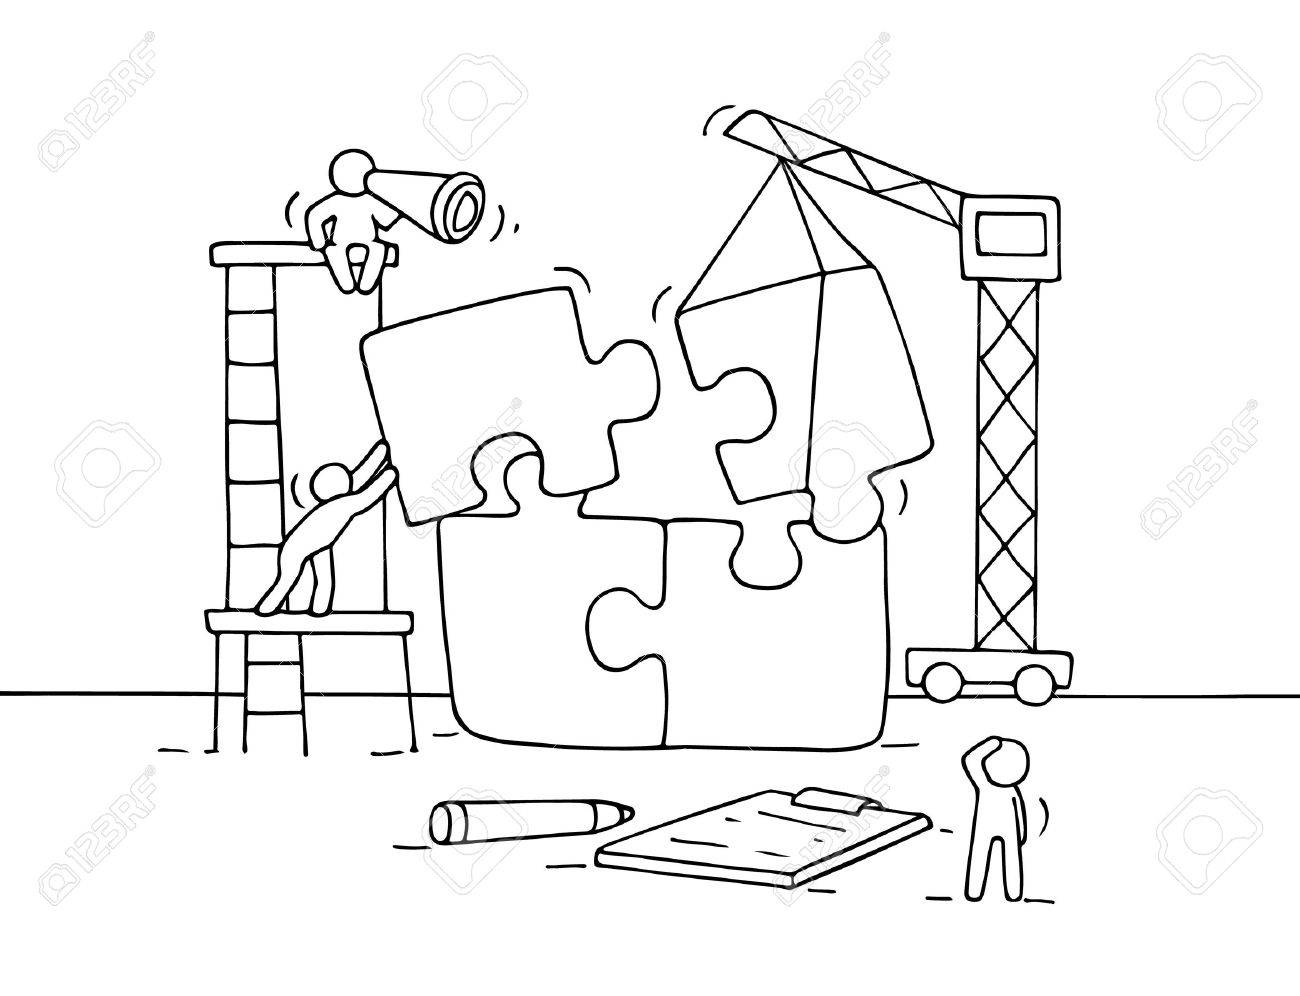 1300x996 Sketch Of Working Little People With Puzzle, Teamwork. Doodle